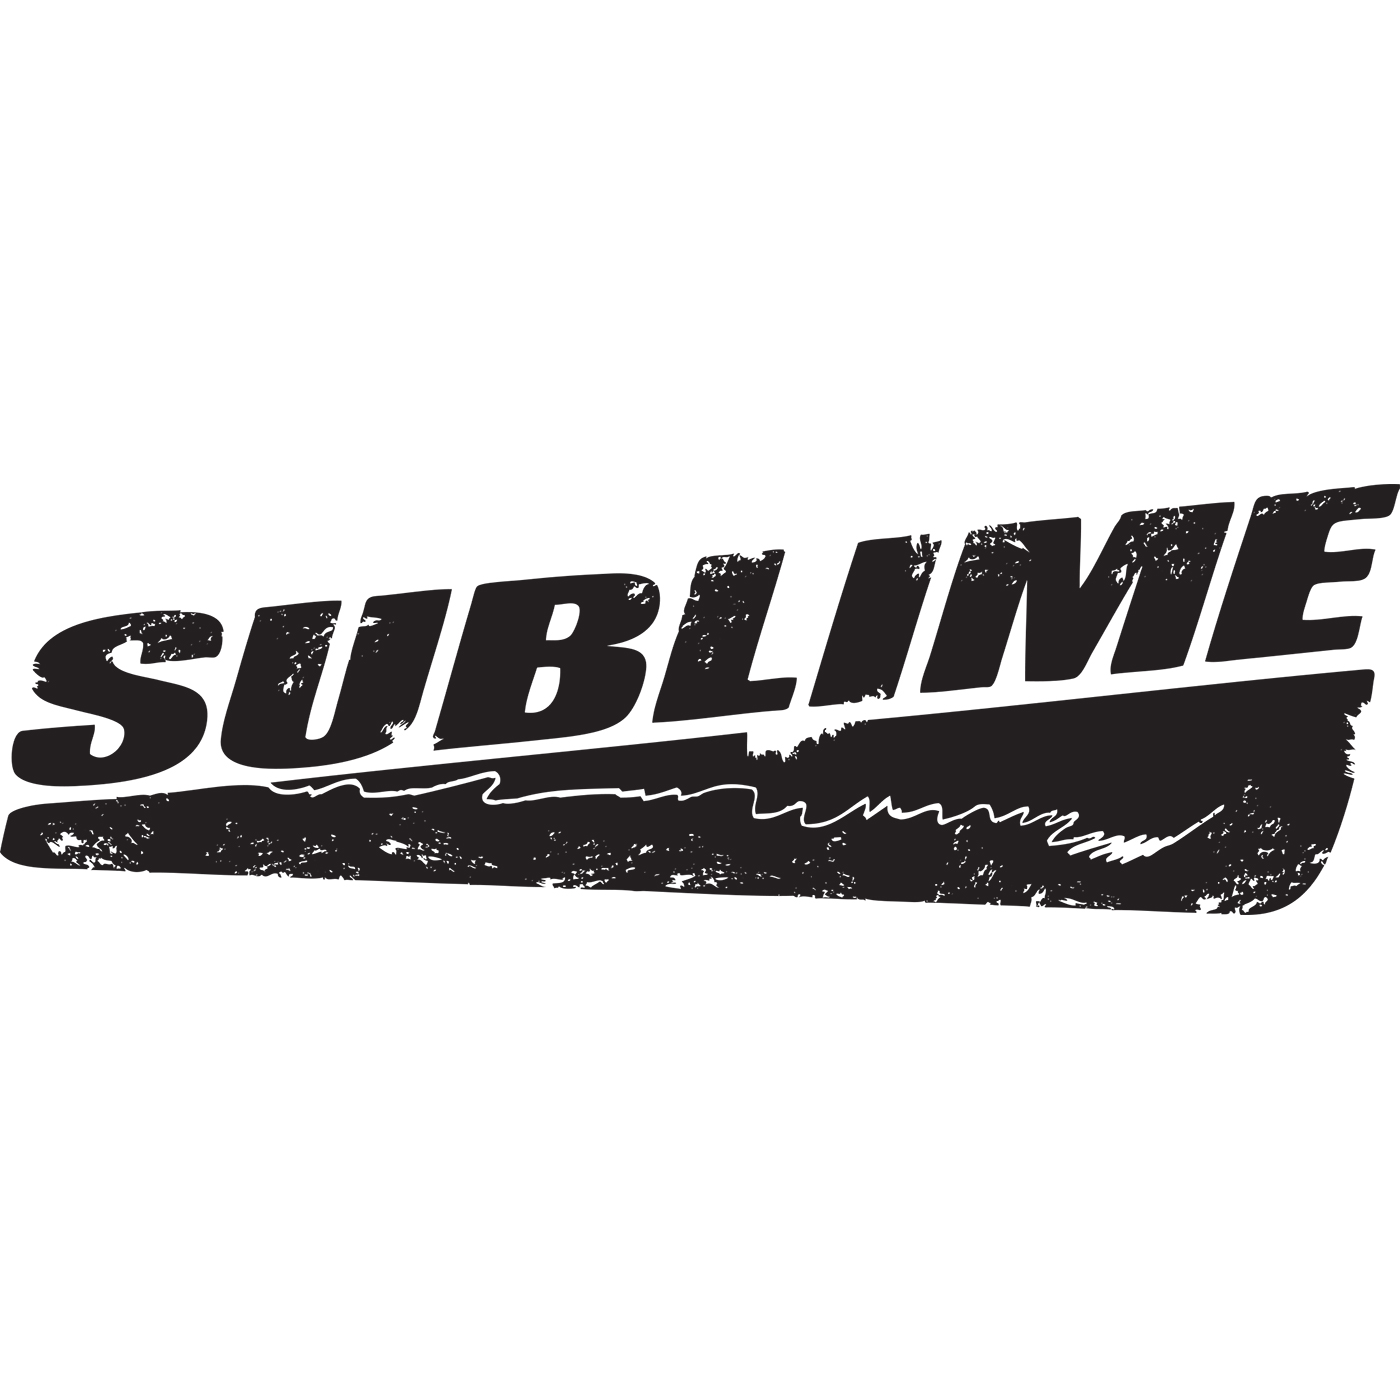 SUBLIME COCKTAILS » Podcast